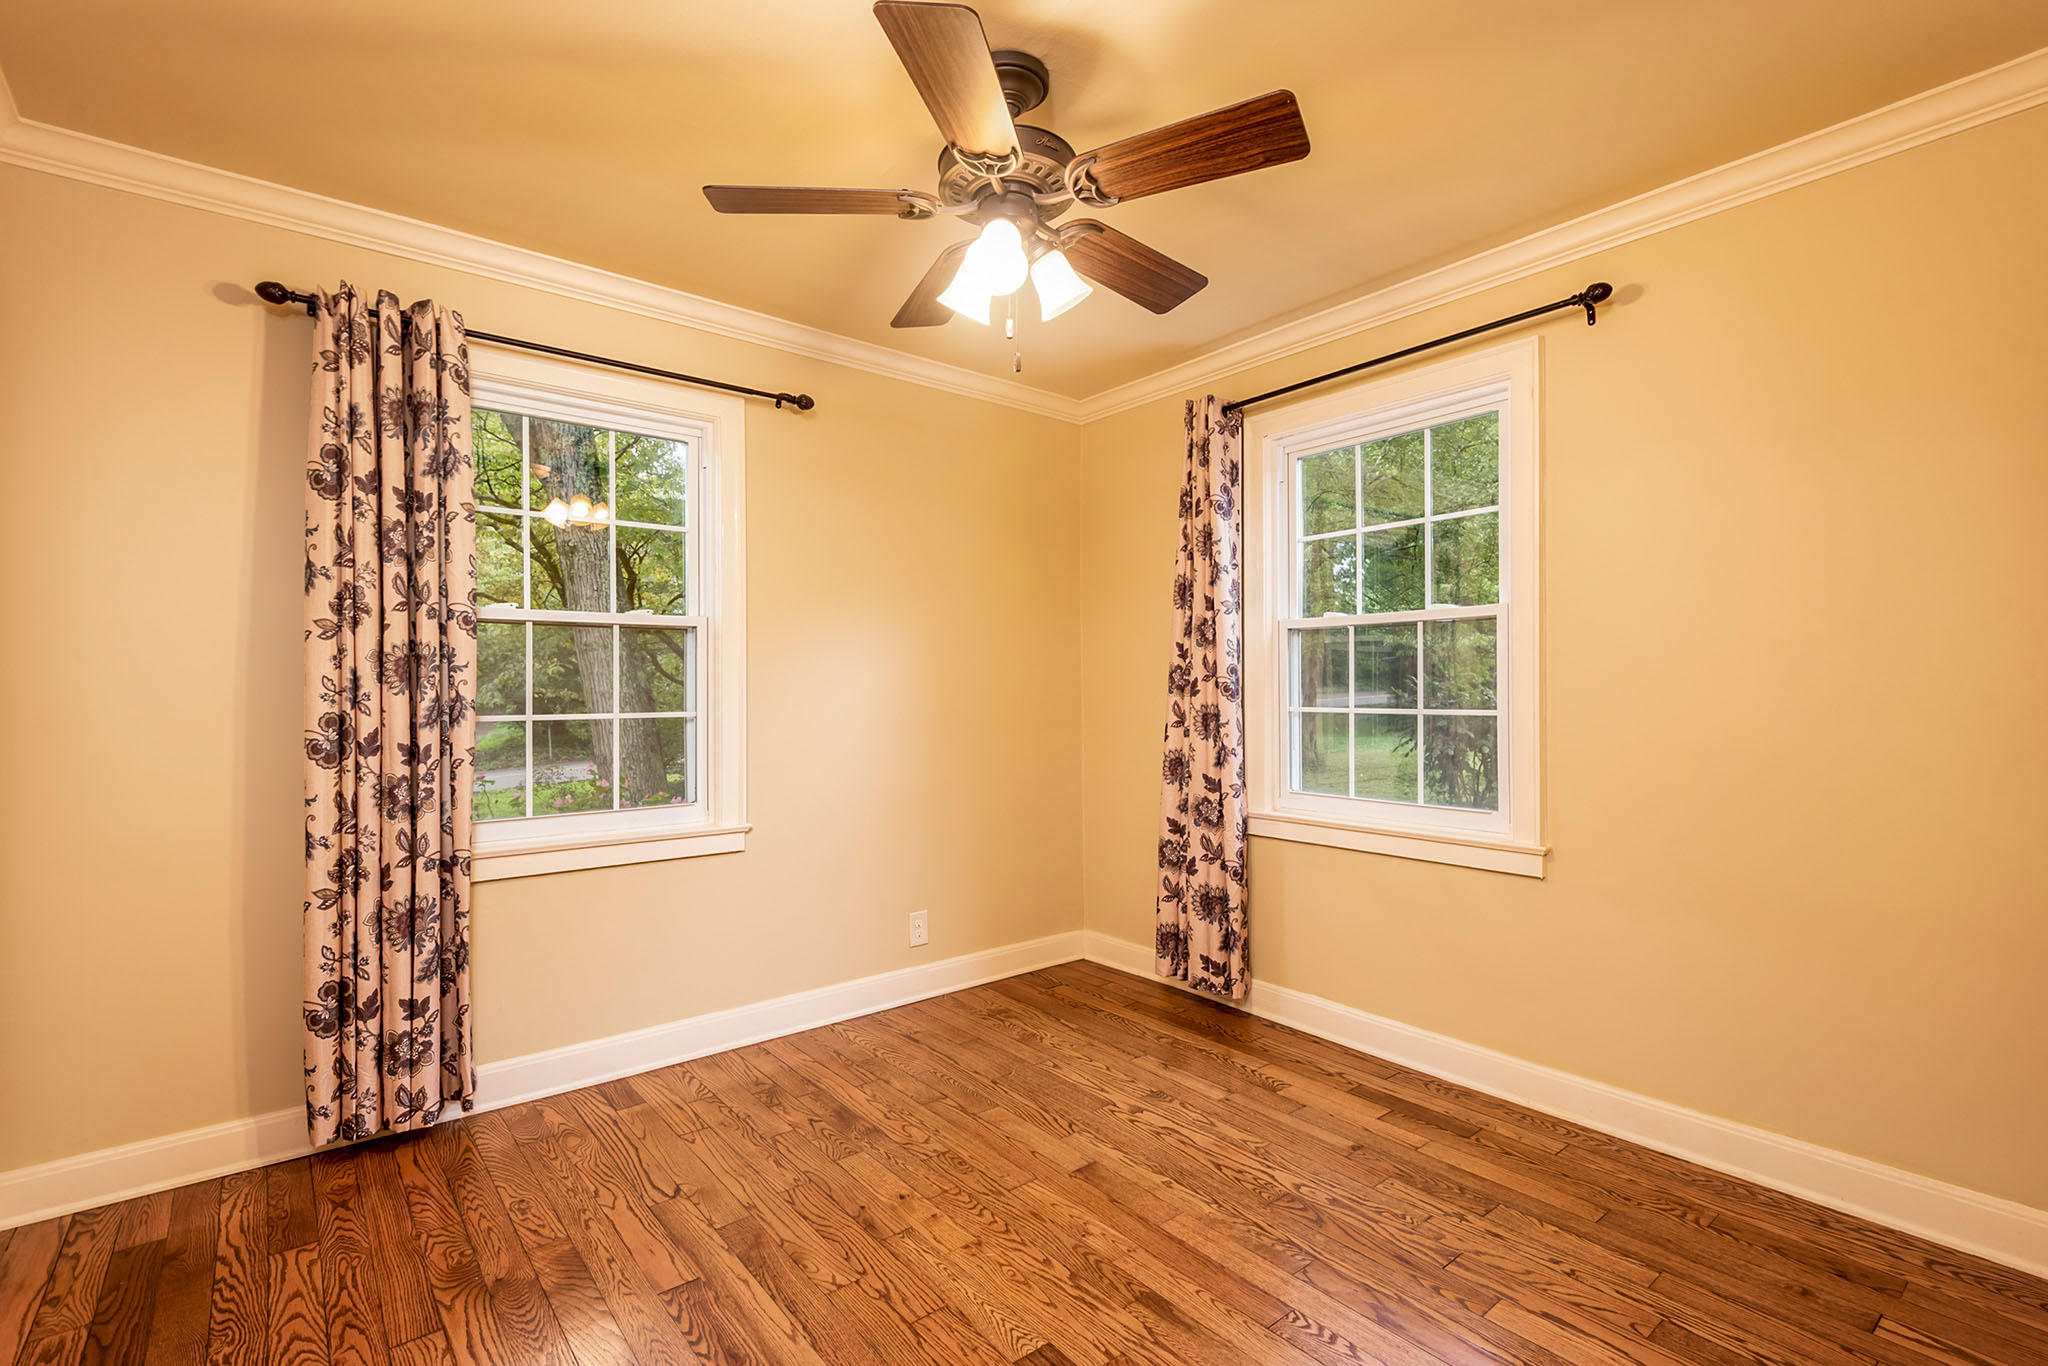 1503 Southgate Rd, Knoxville, Tennessee 37919, 3 Bedrooms Bedrooms, ,2 BathroomsBathrooms,Single Family,For Sale,Southgate,1129893